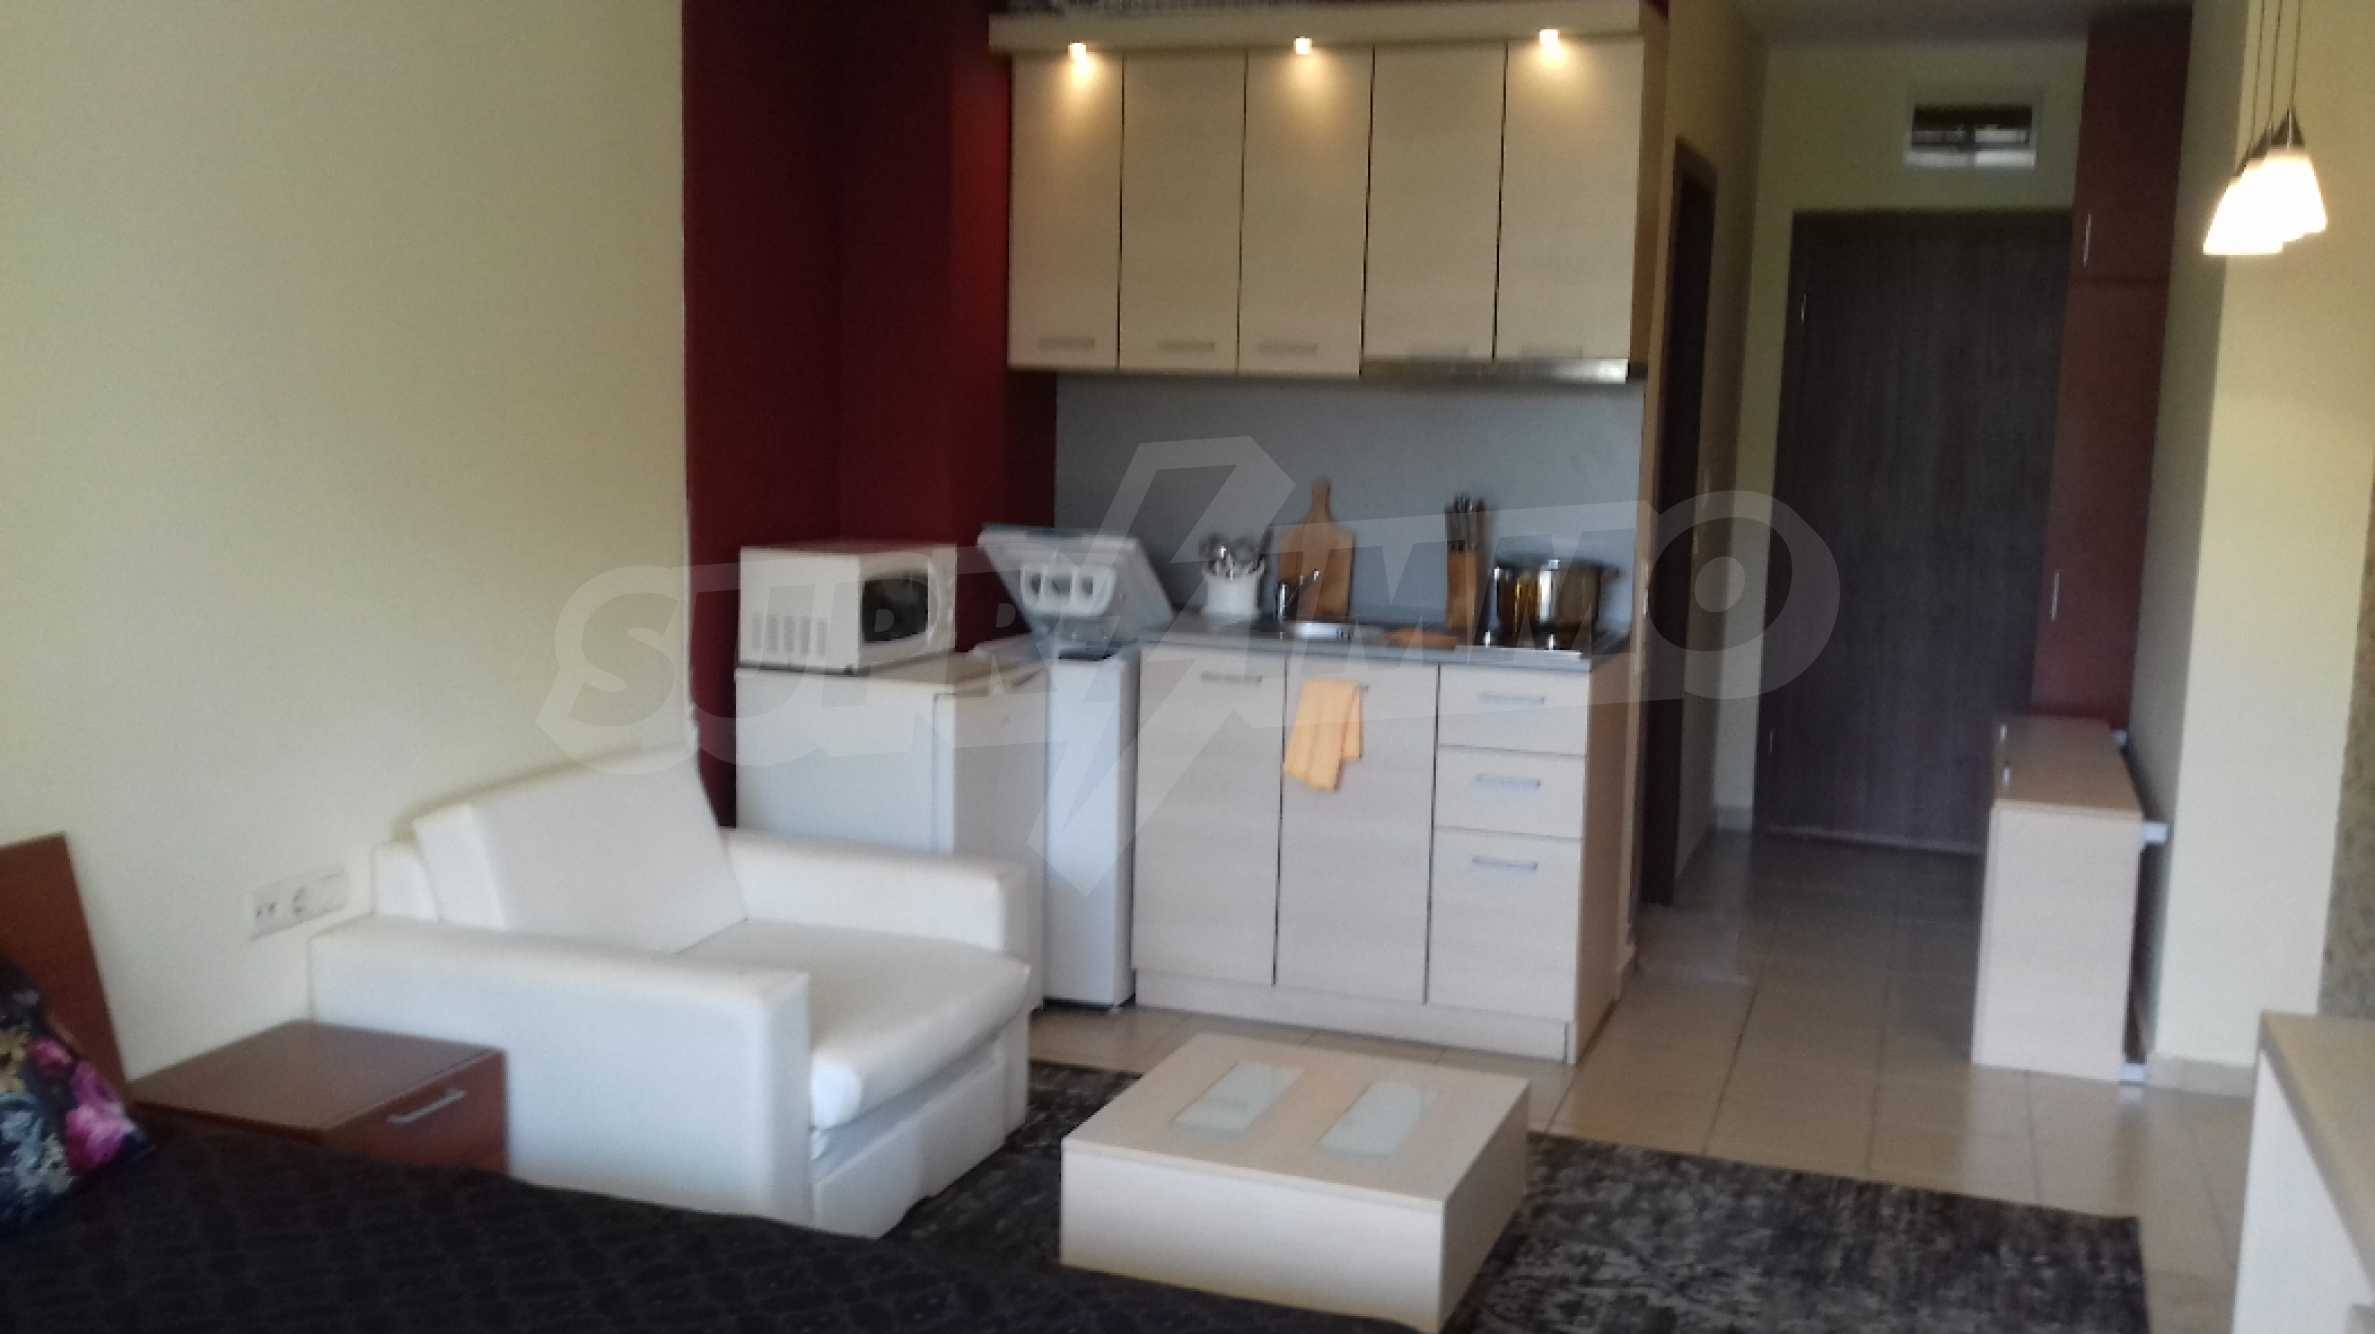 Fully furnished one-bedroom studio apartment in an elite complex in Kavatsite 2